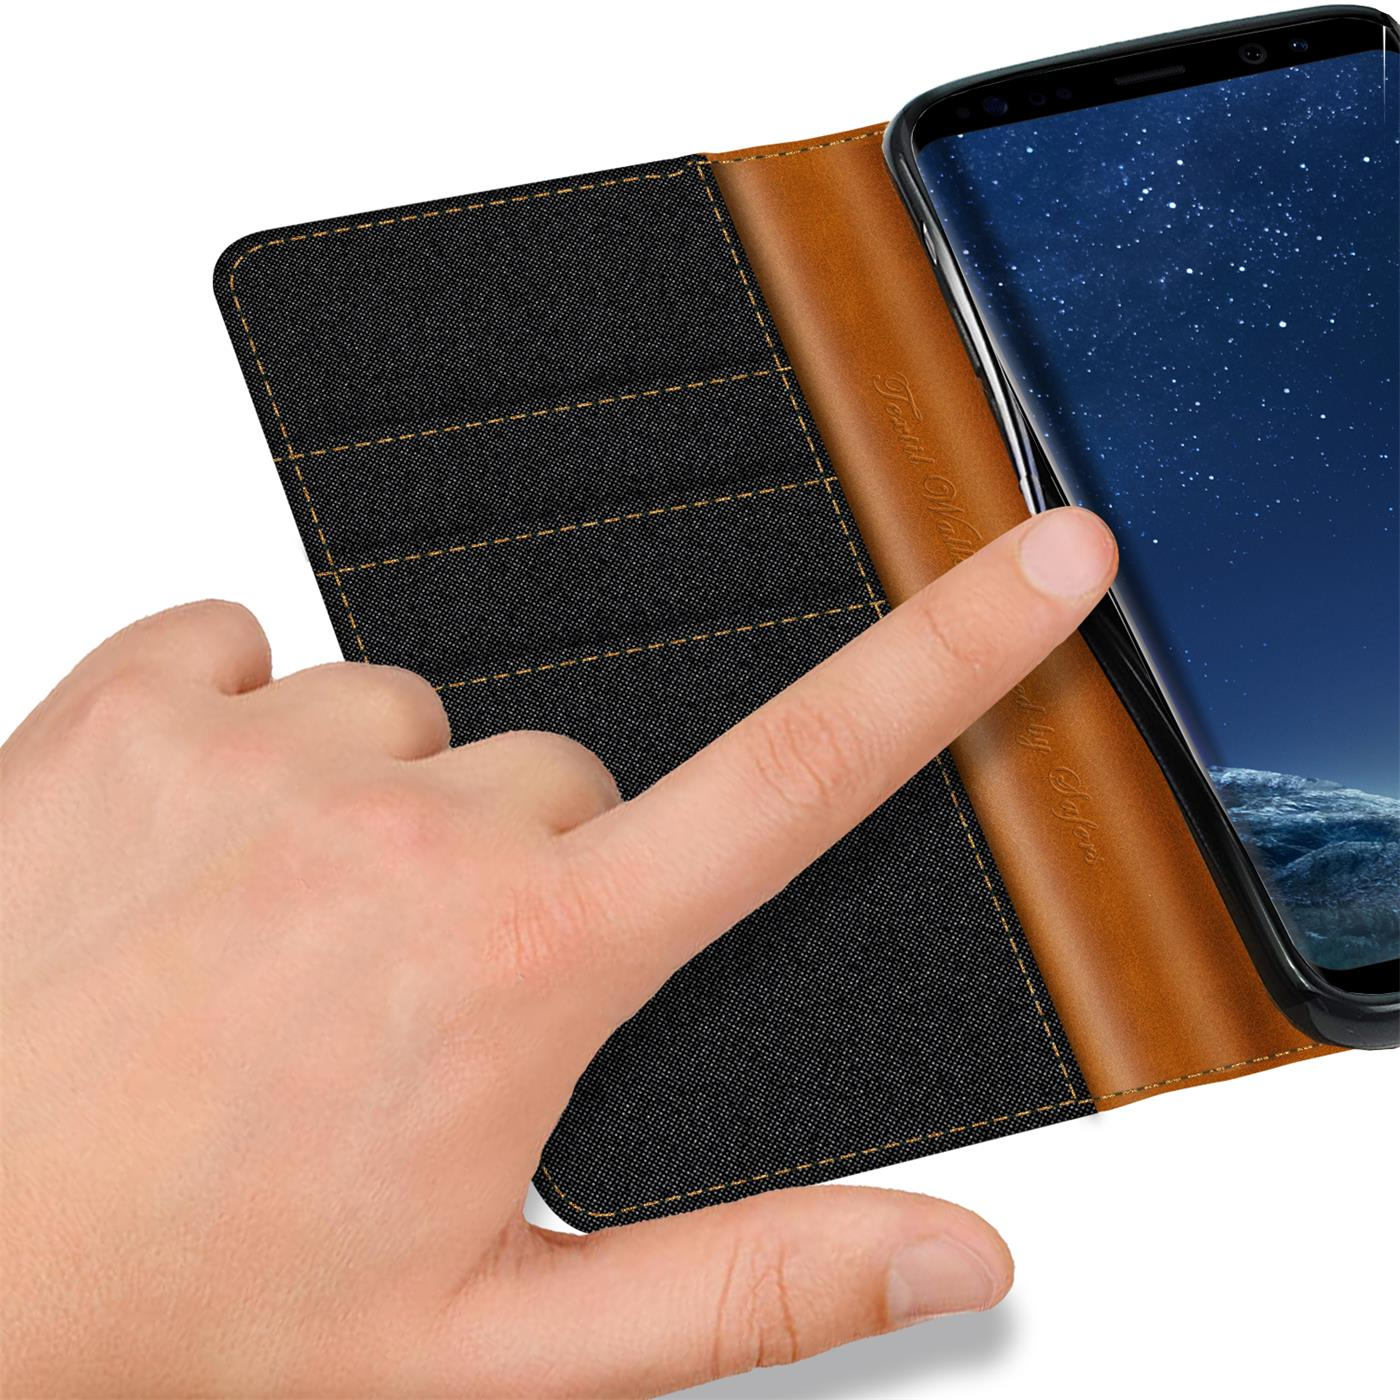 Samsung-Galaxy-S8-Plus-Phone-PU-Leather-Magnetic-Flip-Case-Wallet-Denim-Cover thumbnail 8